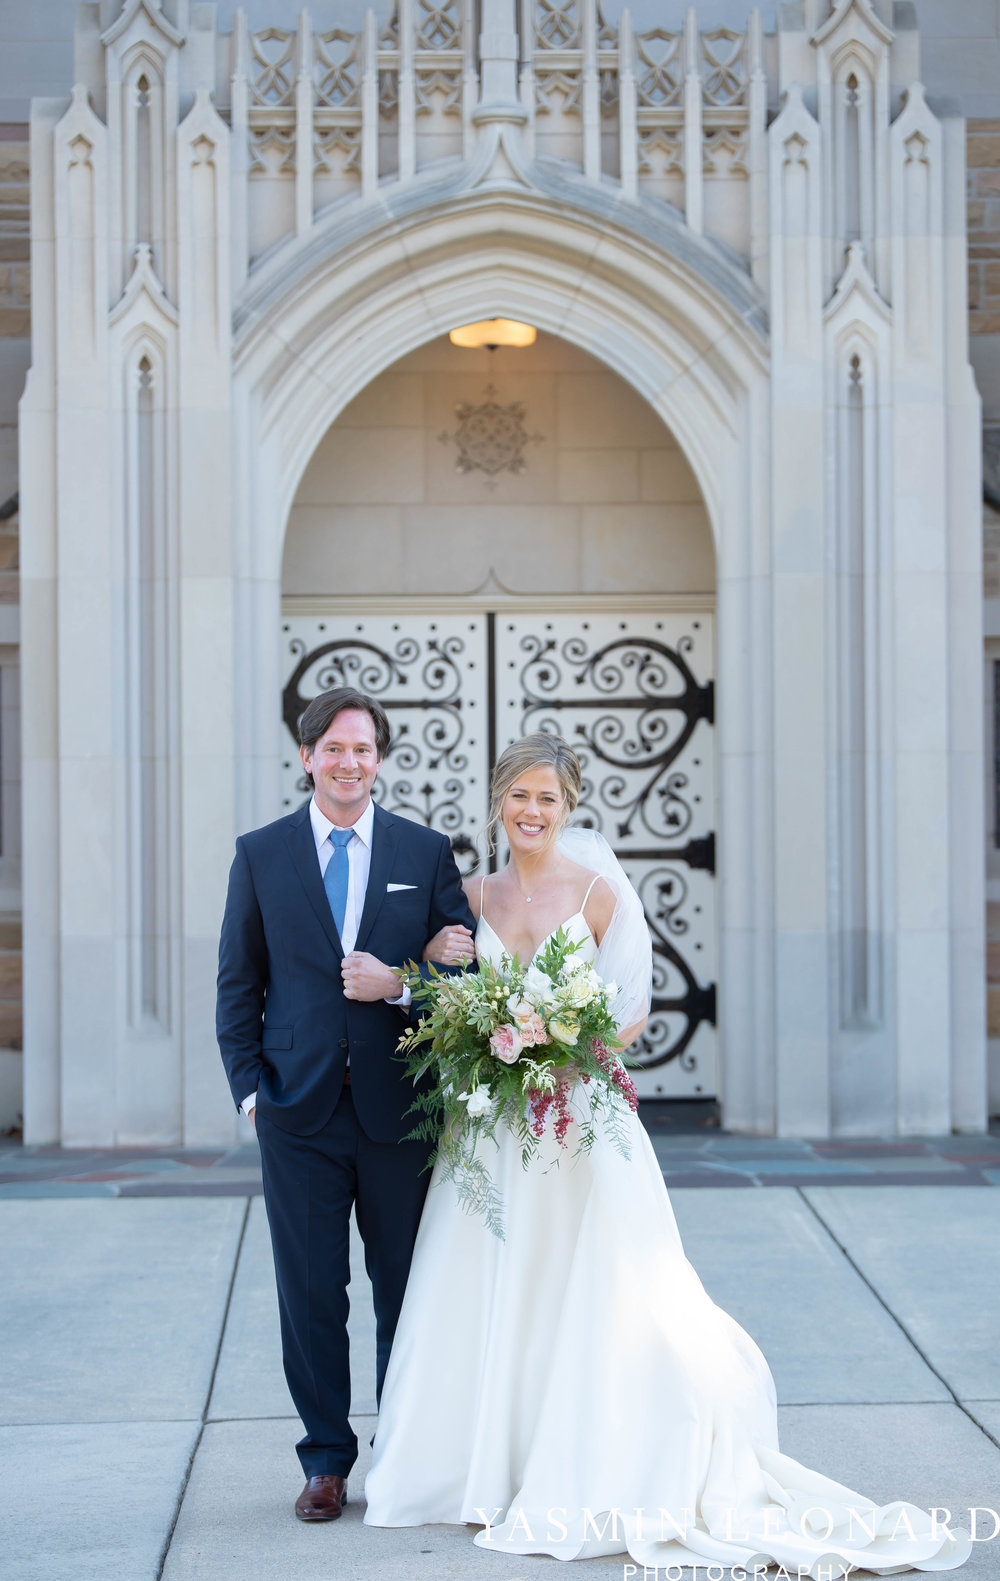 Wesley Memorial United Methodist Church - EmeryWood - High Point Weddings - High Point Wedding Photographer - NC Wedding Photographer - Yasmin Leonard Photography-39.jpg